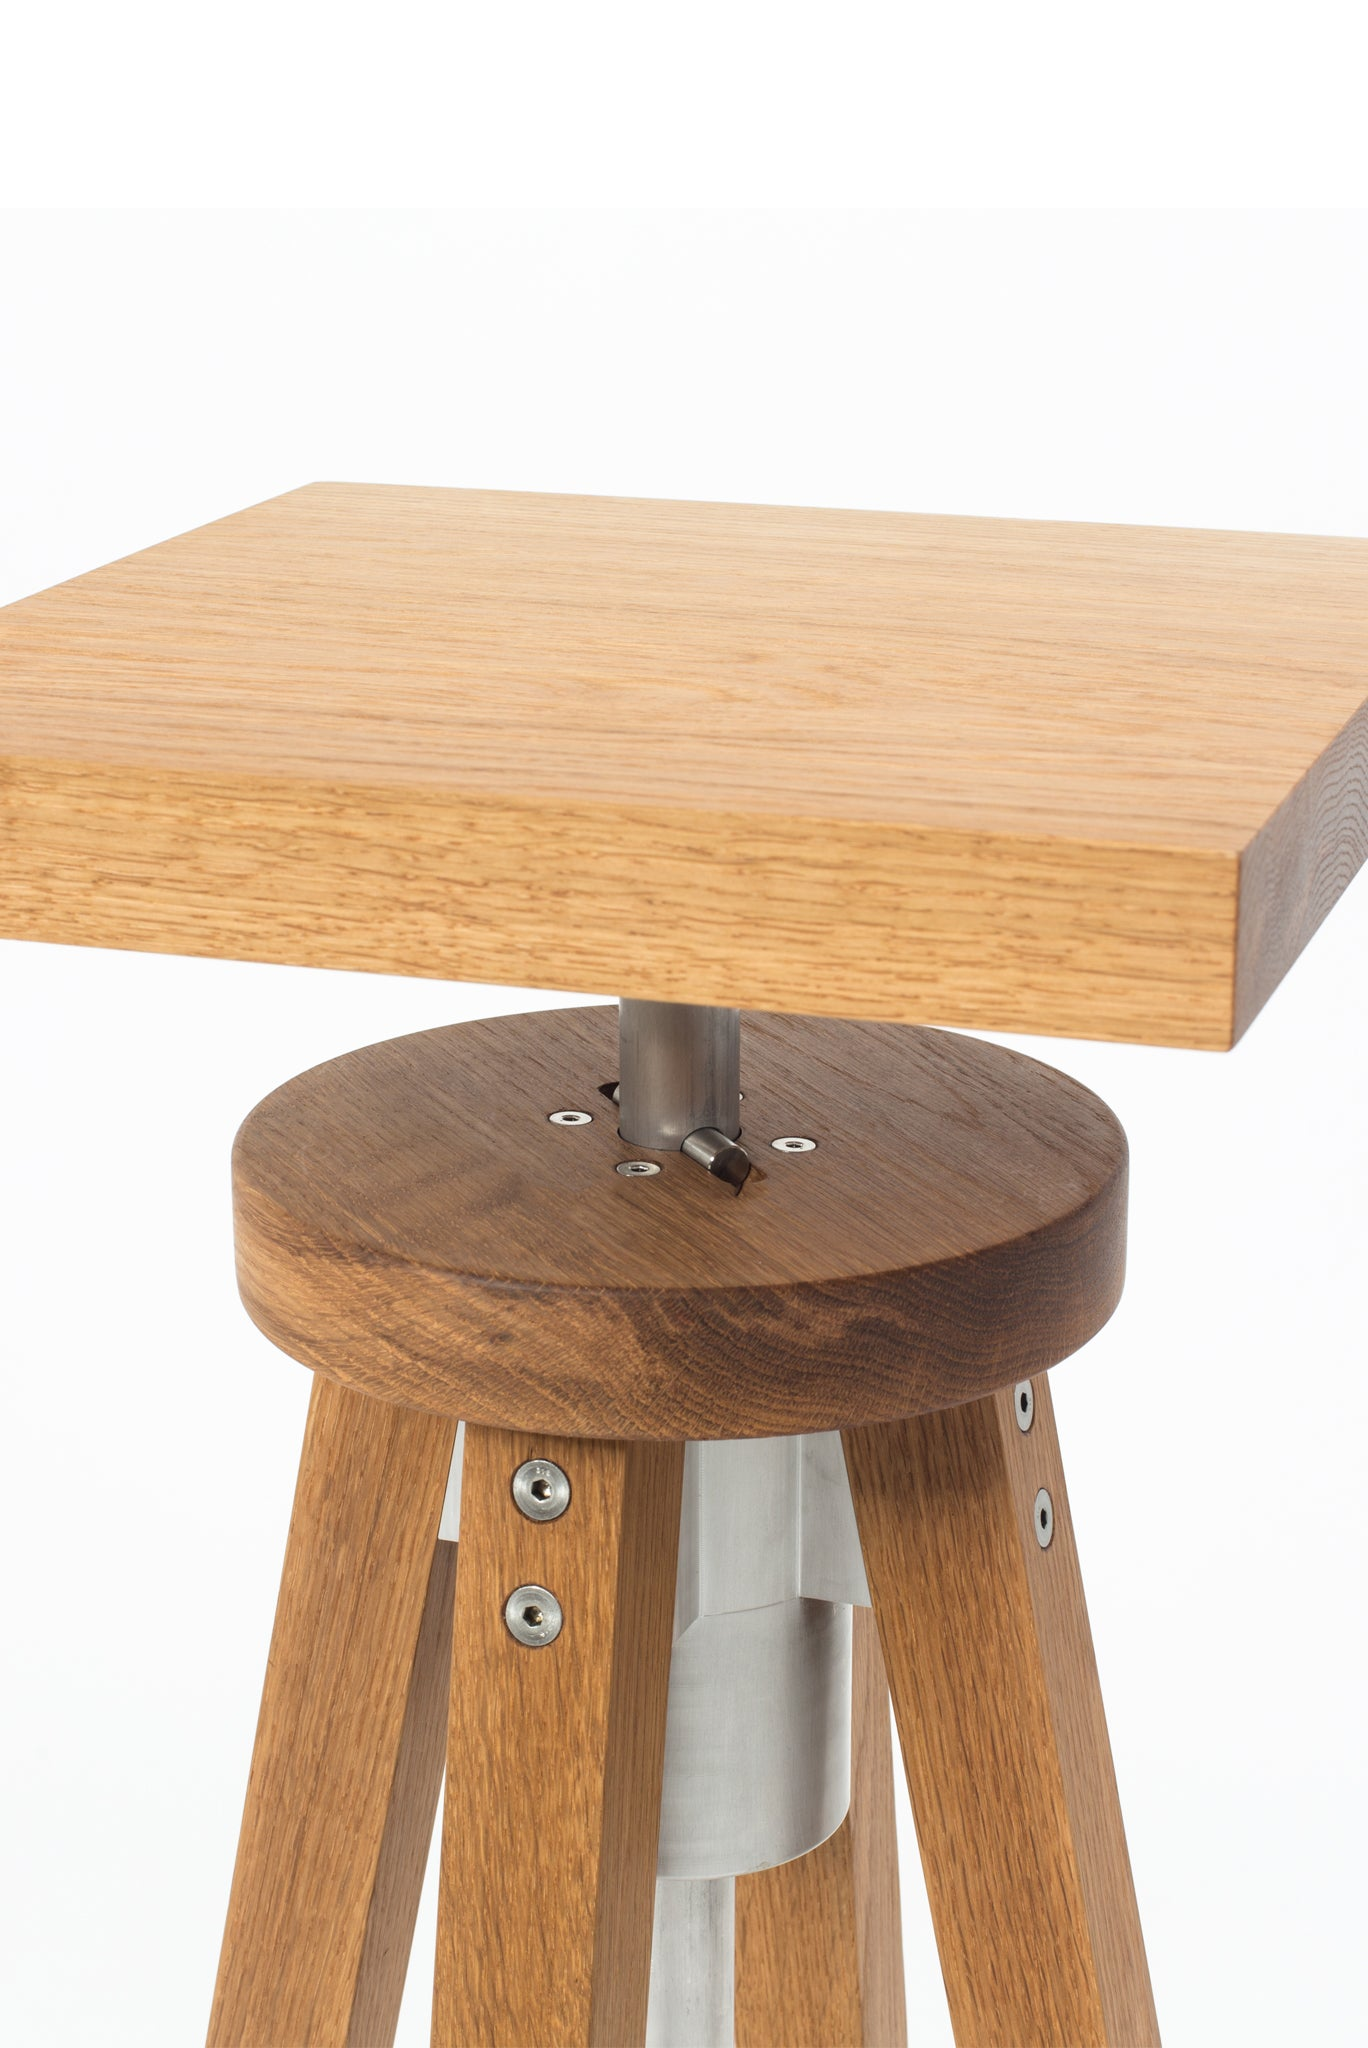 Sculptor's Stand Stool #1